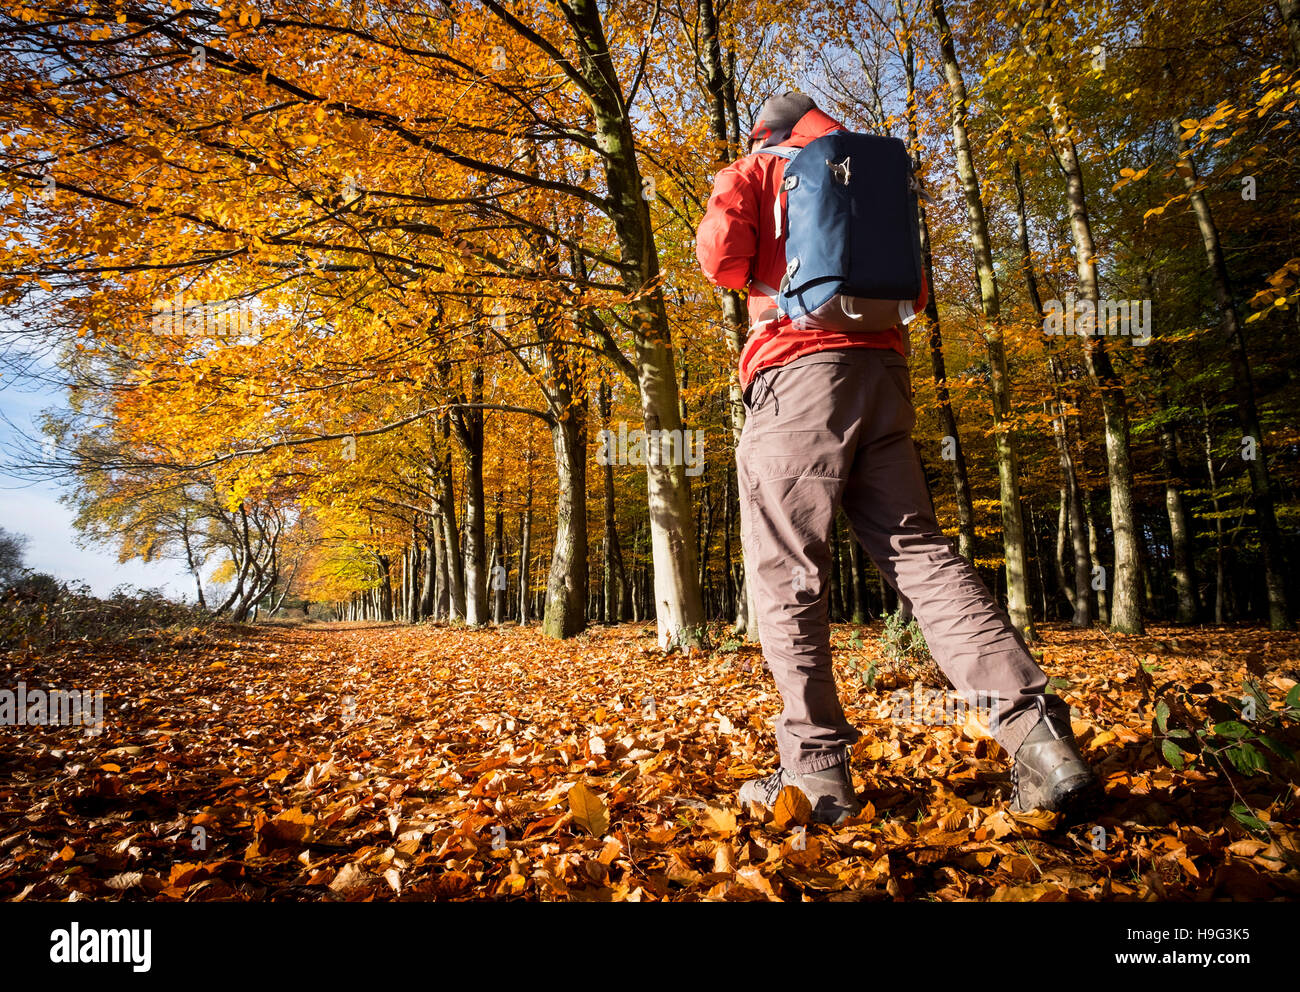 A man walking in the New Forest, Hampshire, UK in Autumn - Stock Image